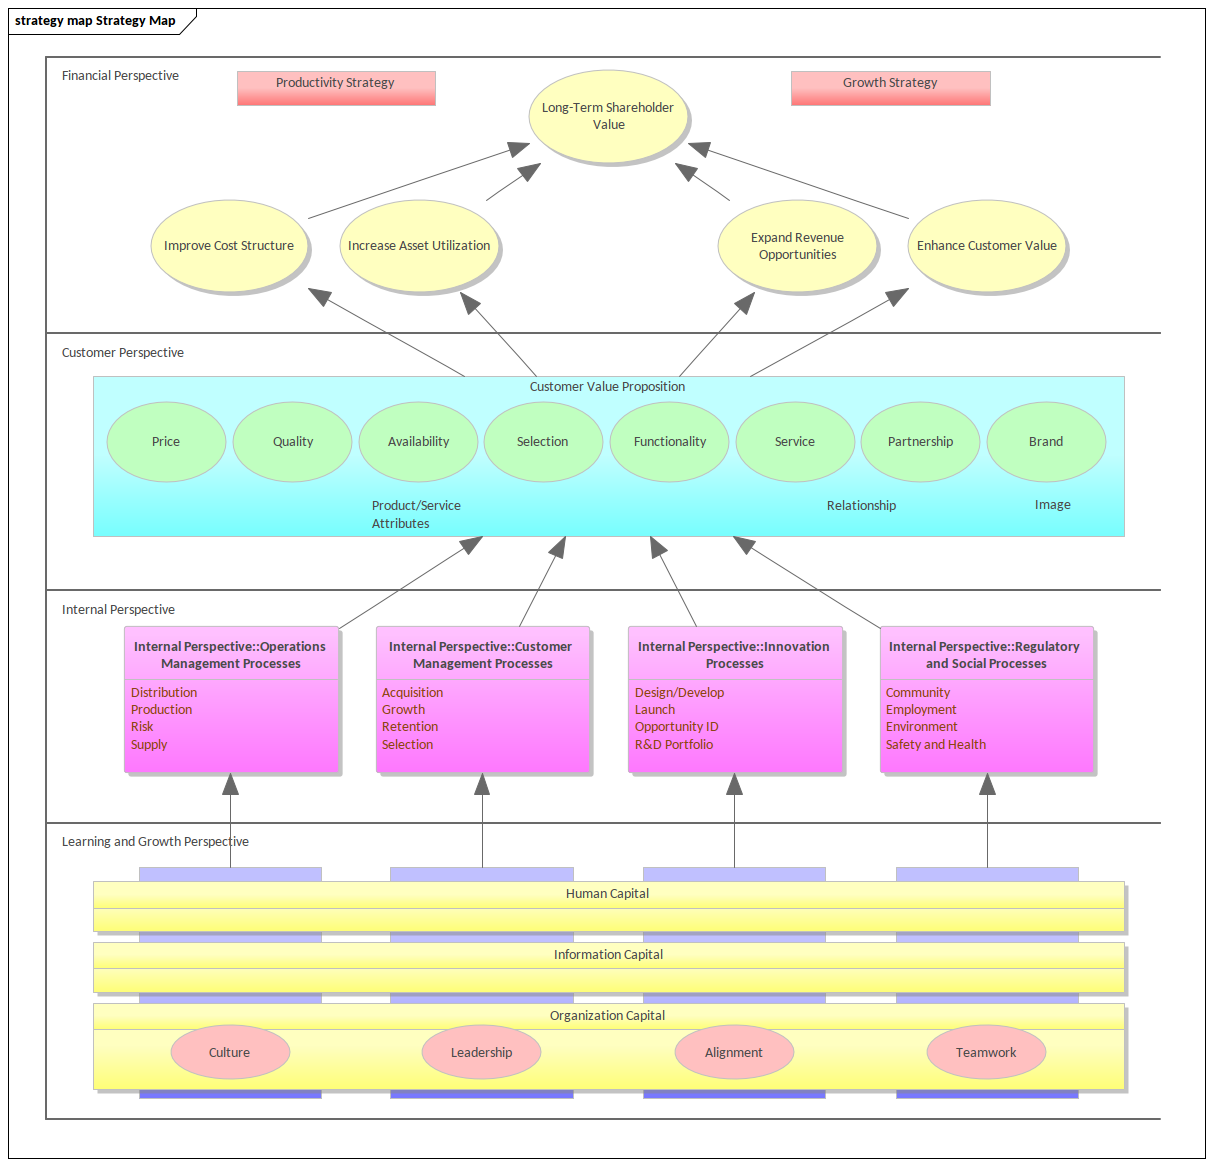 Enterprise Architecture - Strategy Map